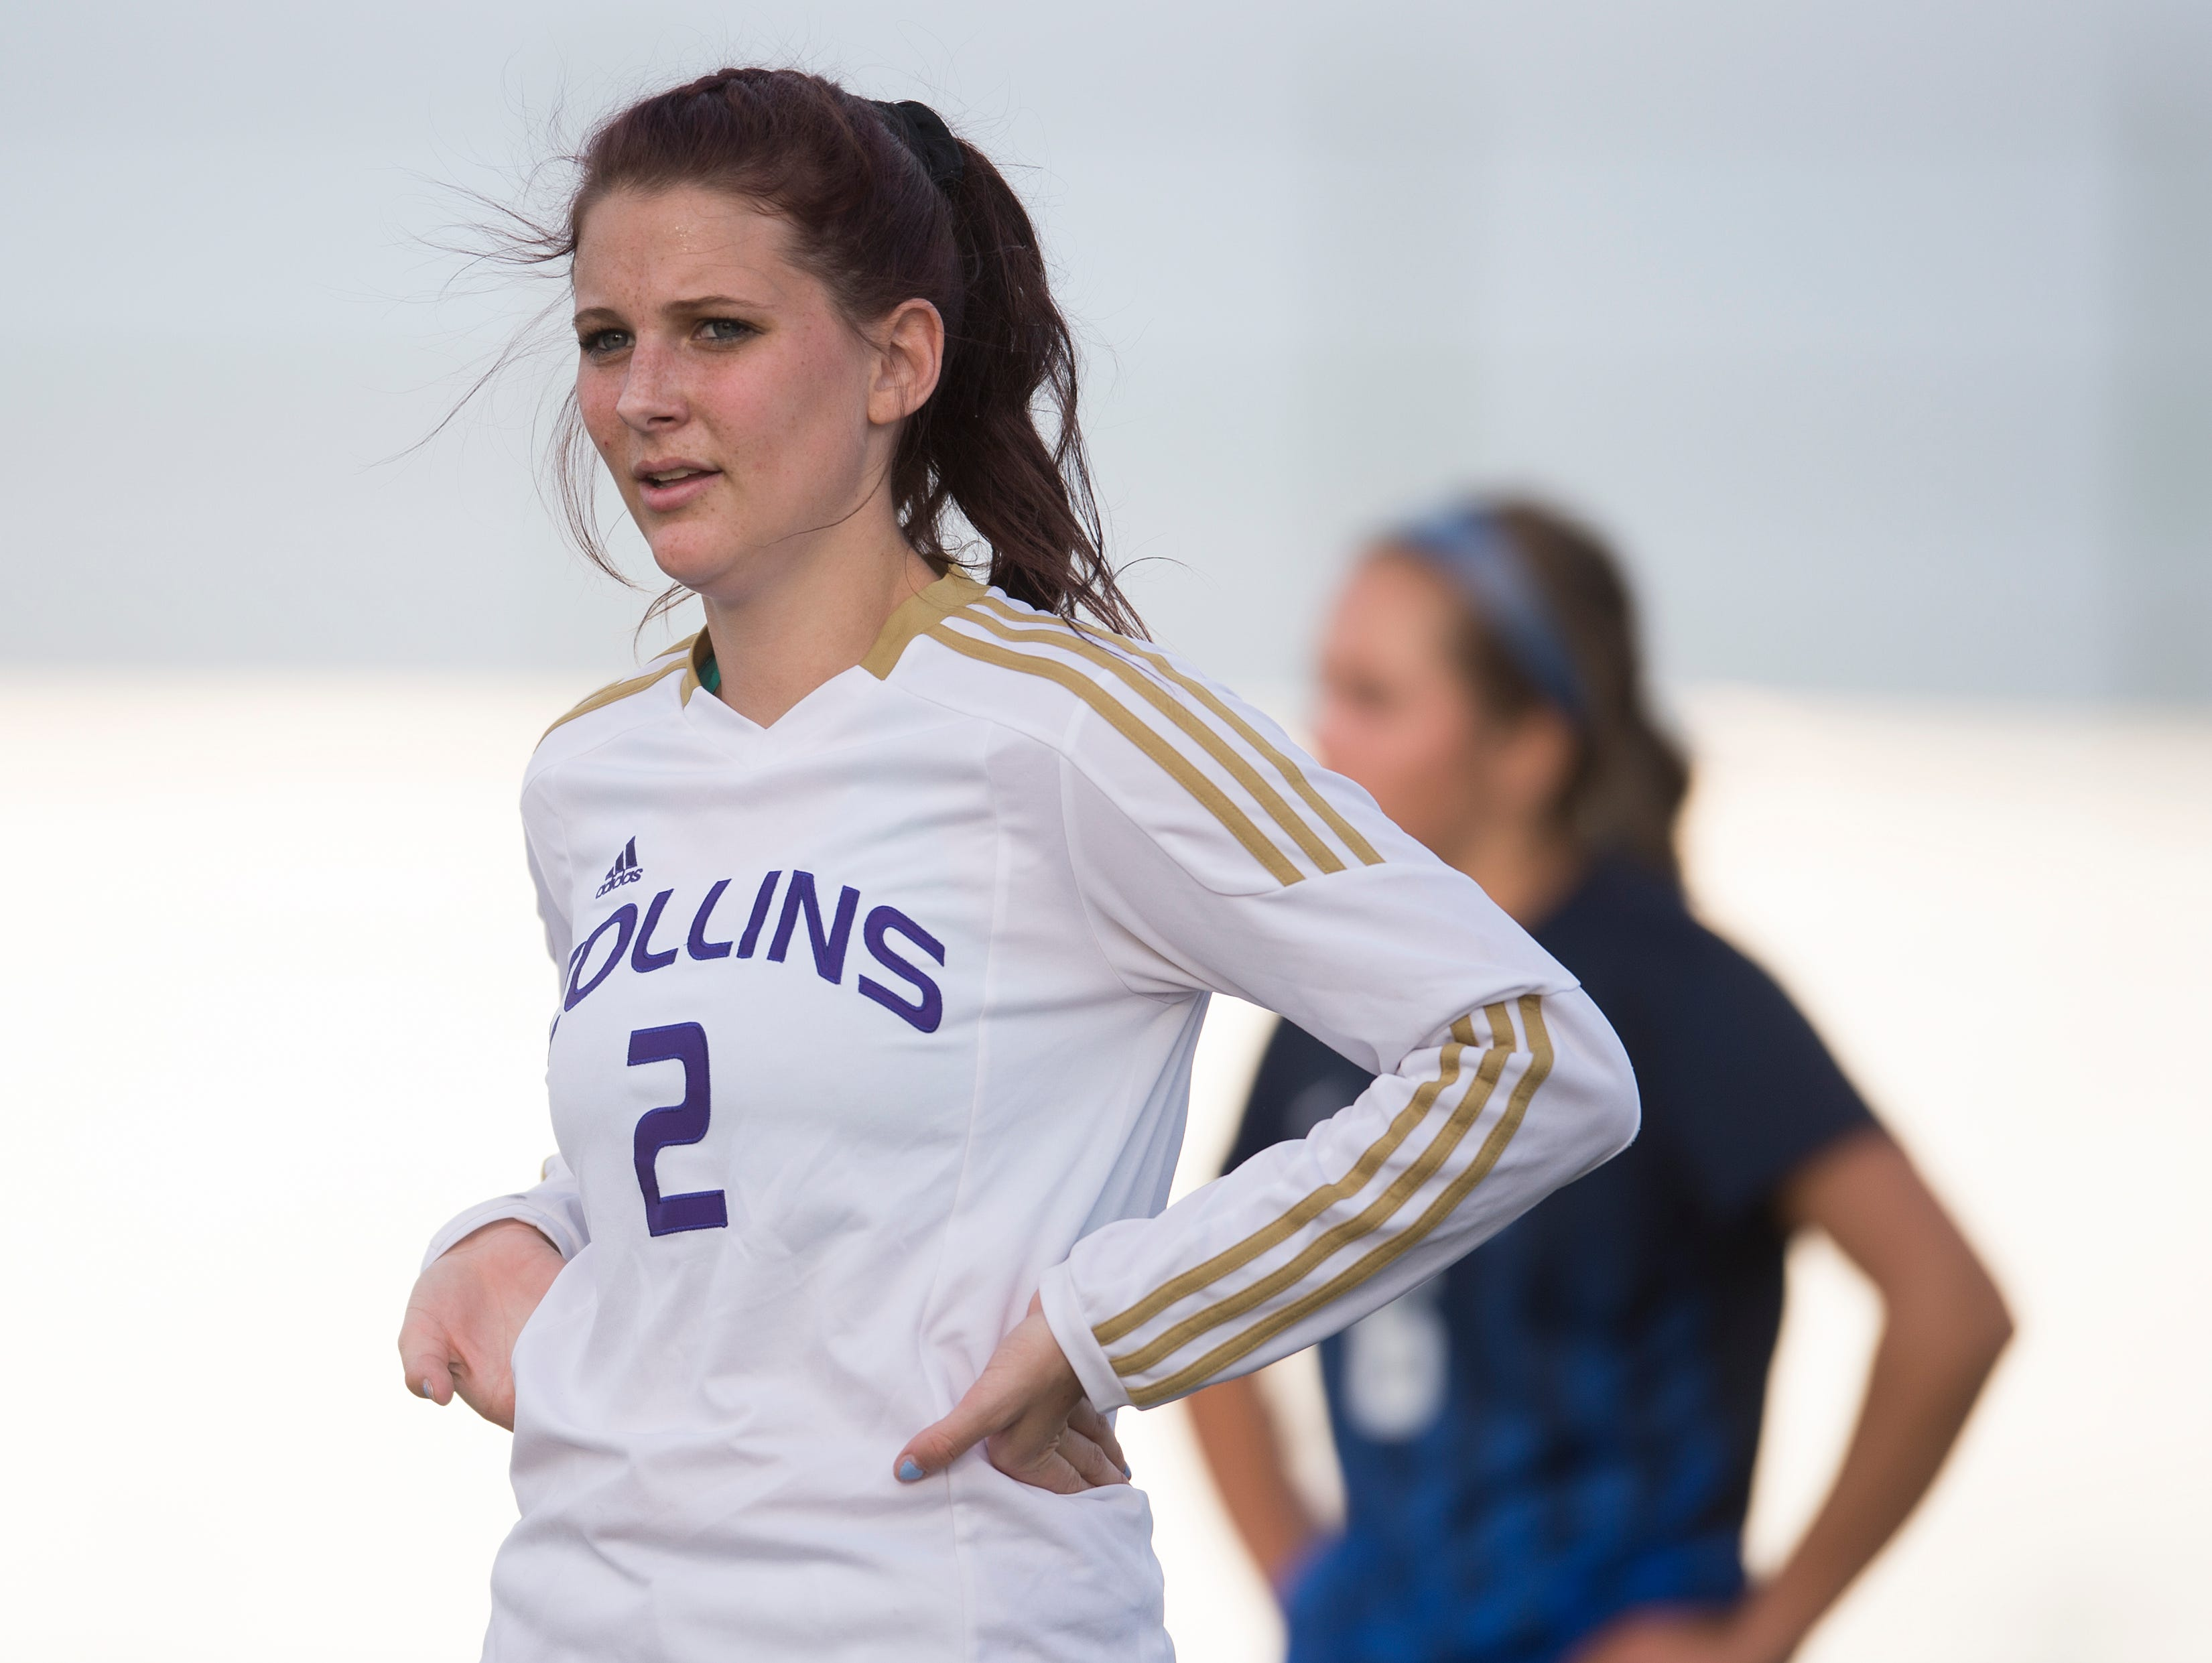 Fort Collins' Nicole Dietrich scored two goals and assisted on a third Thursday night in the Lambkins' 3-0 win over crosstown rival Poudre at French Field.